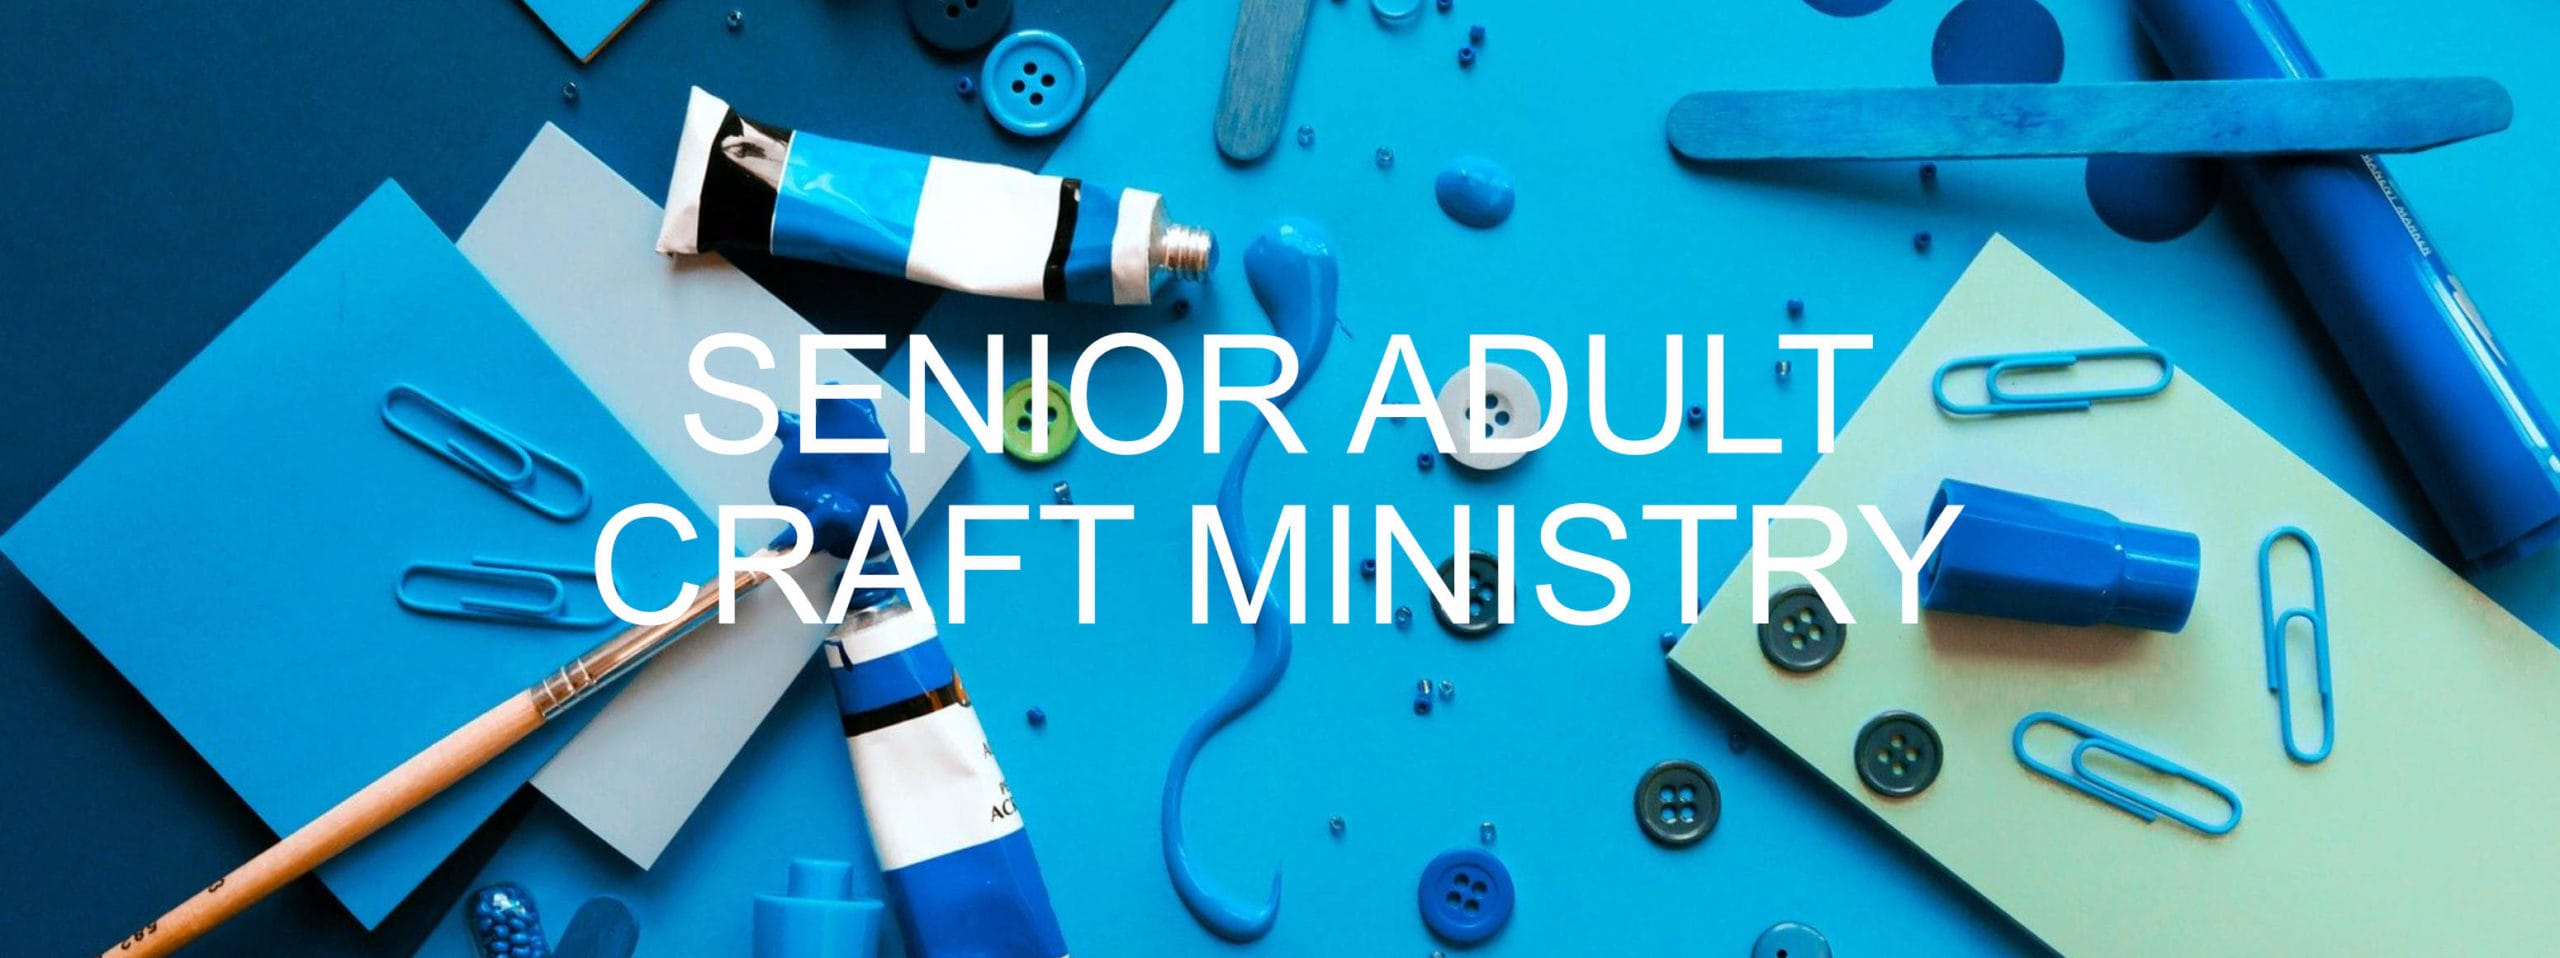 senior adult craft ministry